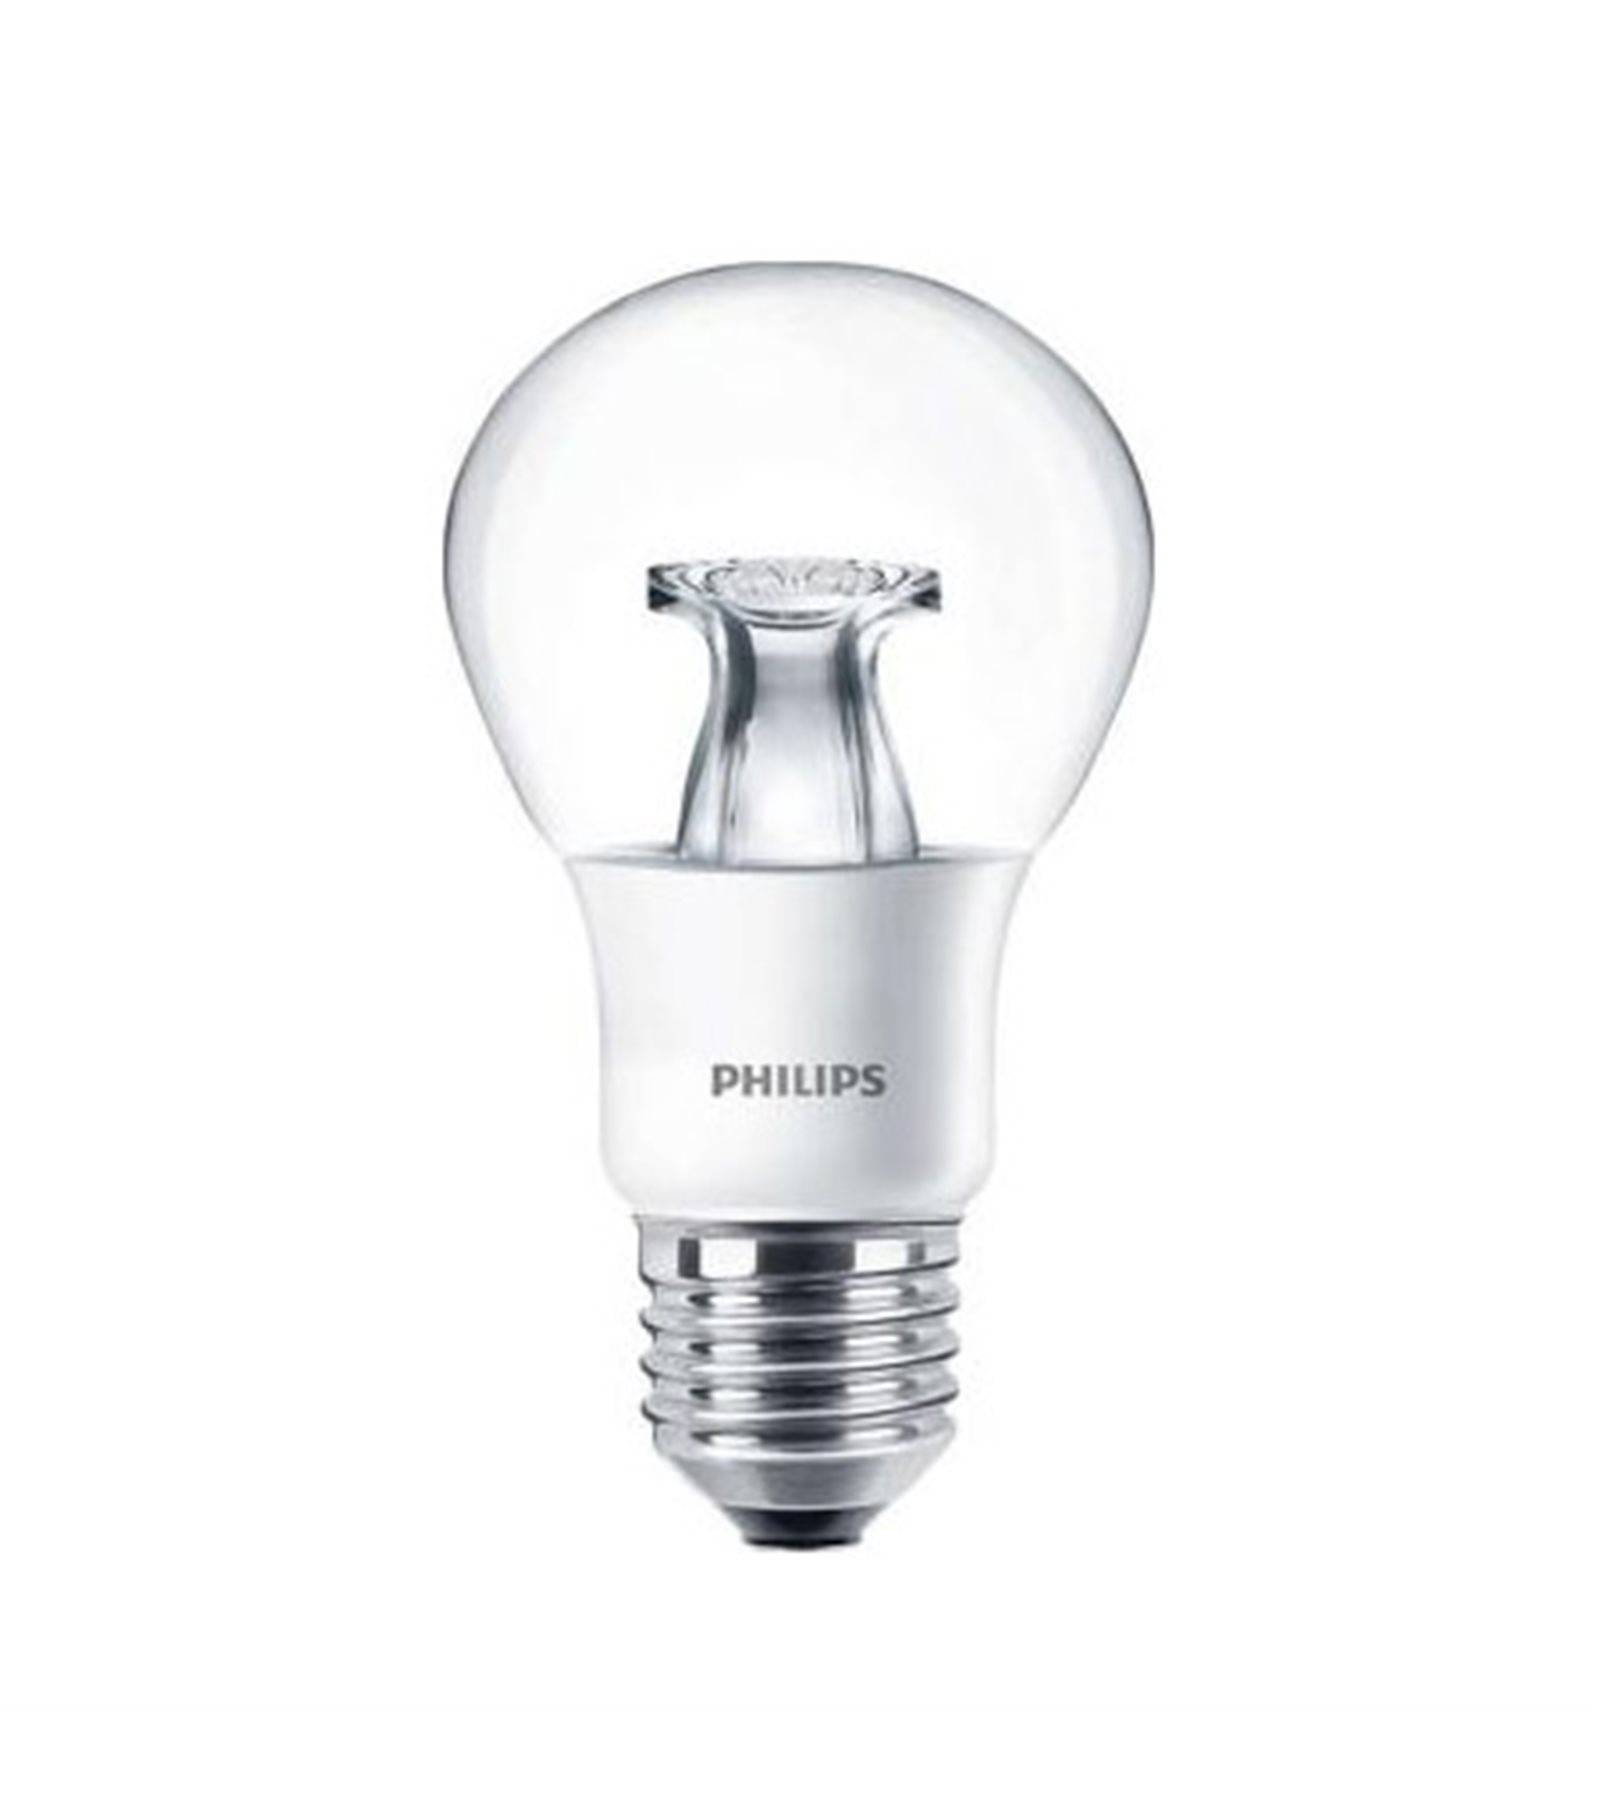 ampoule led e27 a60 dimmable master ledbulb dimtone 6w 470lm quiv 40w blanc chaud philips. Black Bedroom Furniture Sets. Home Design Ideas